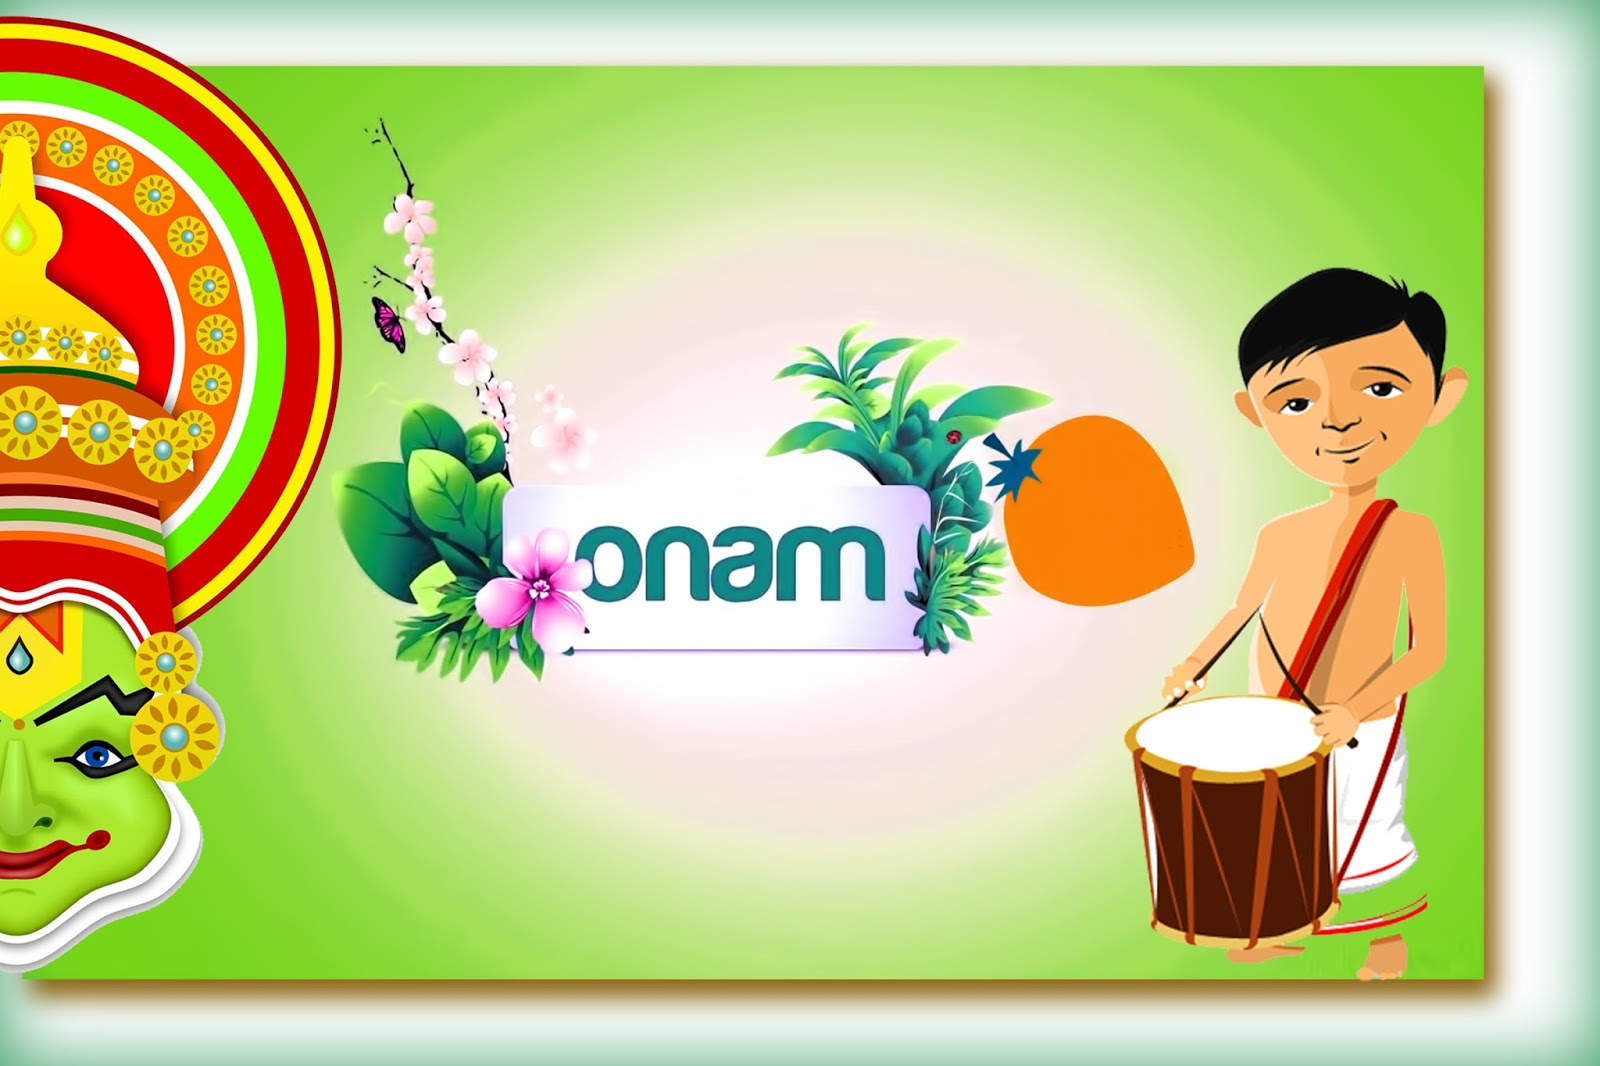 Happy onam 2016 wishes onam images new quotes happy onam quotes images wallpapers greetings sms for kristyandbryce Image collections